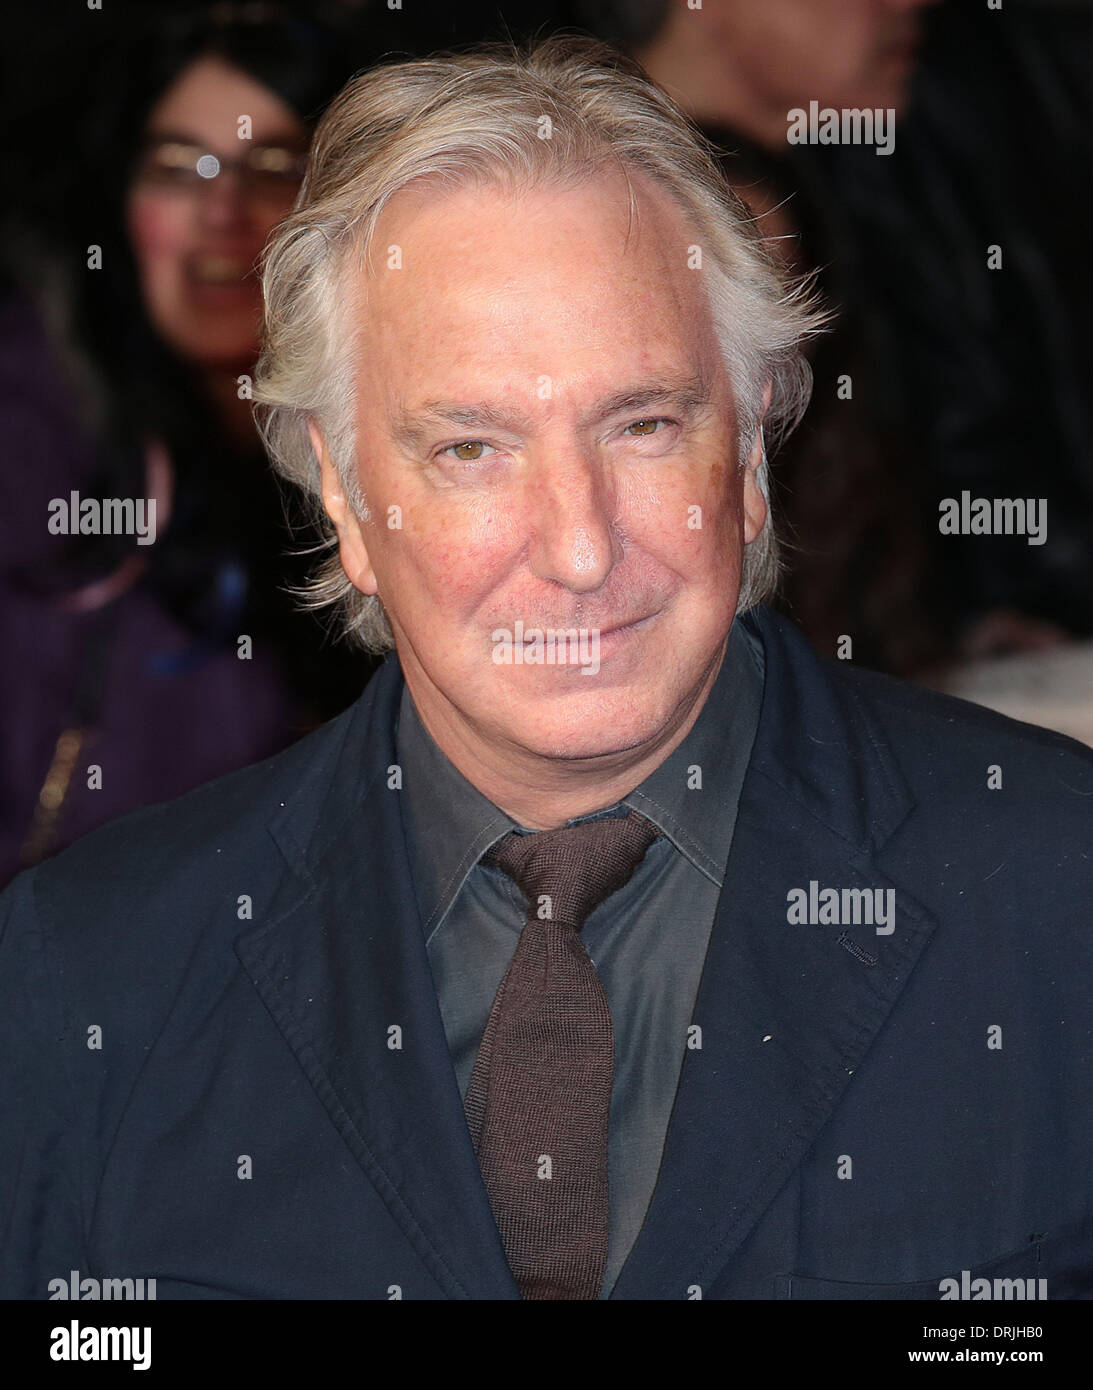 London, UK, 27th January 2014 Alan Rickman attends the UK premiere for The Invisible Woman at Odeon Kensington, High Street Kensington, London Photo: MRP/Alamy Live News - Stock Image